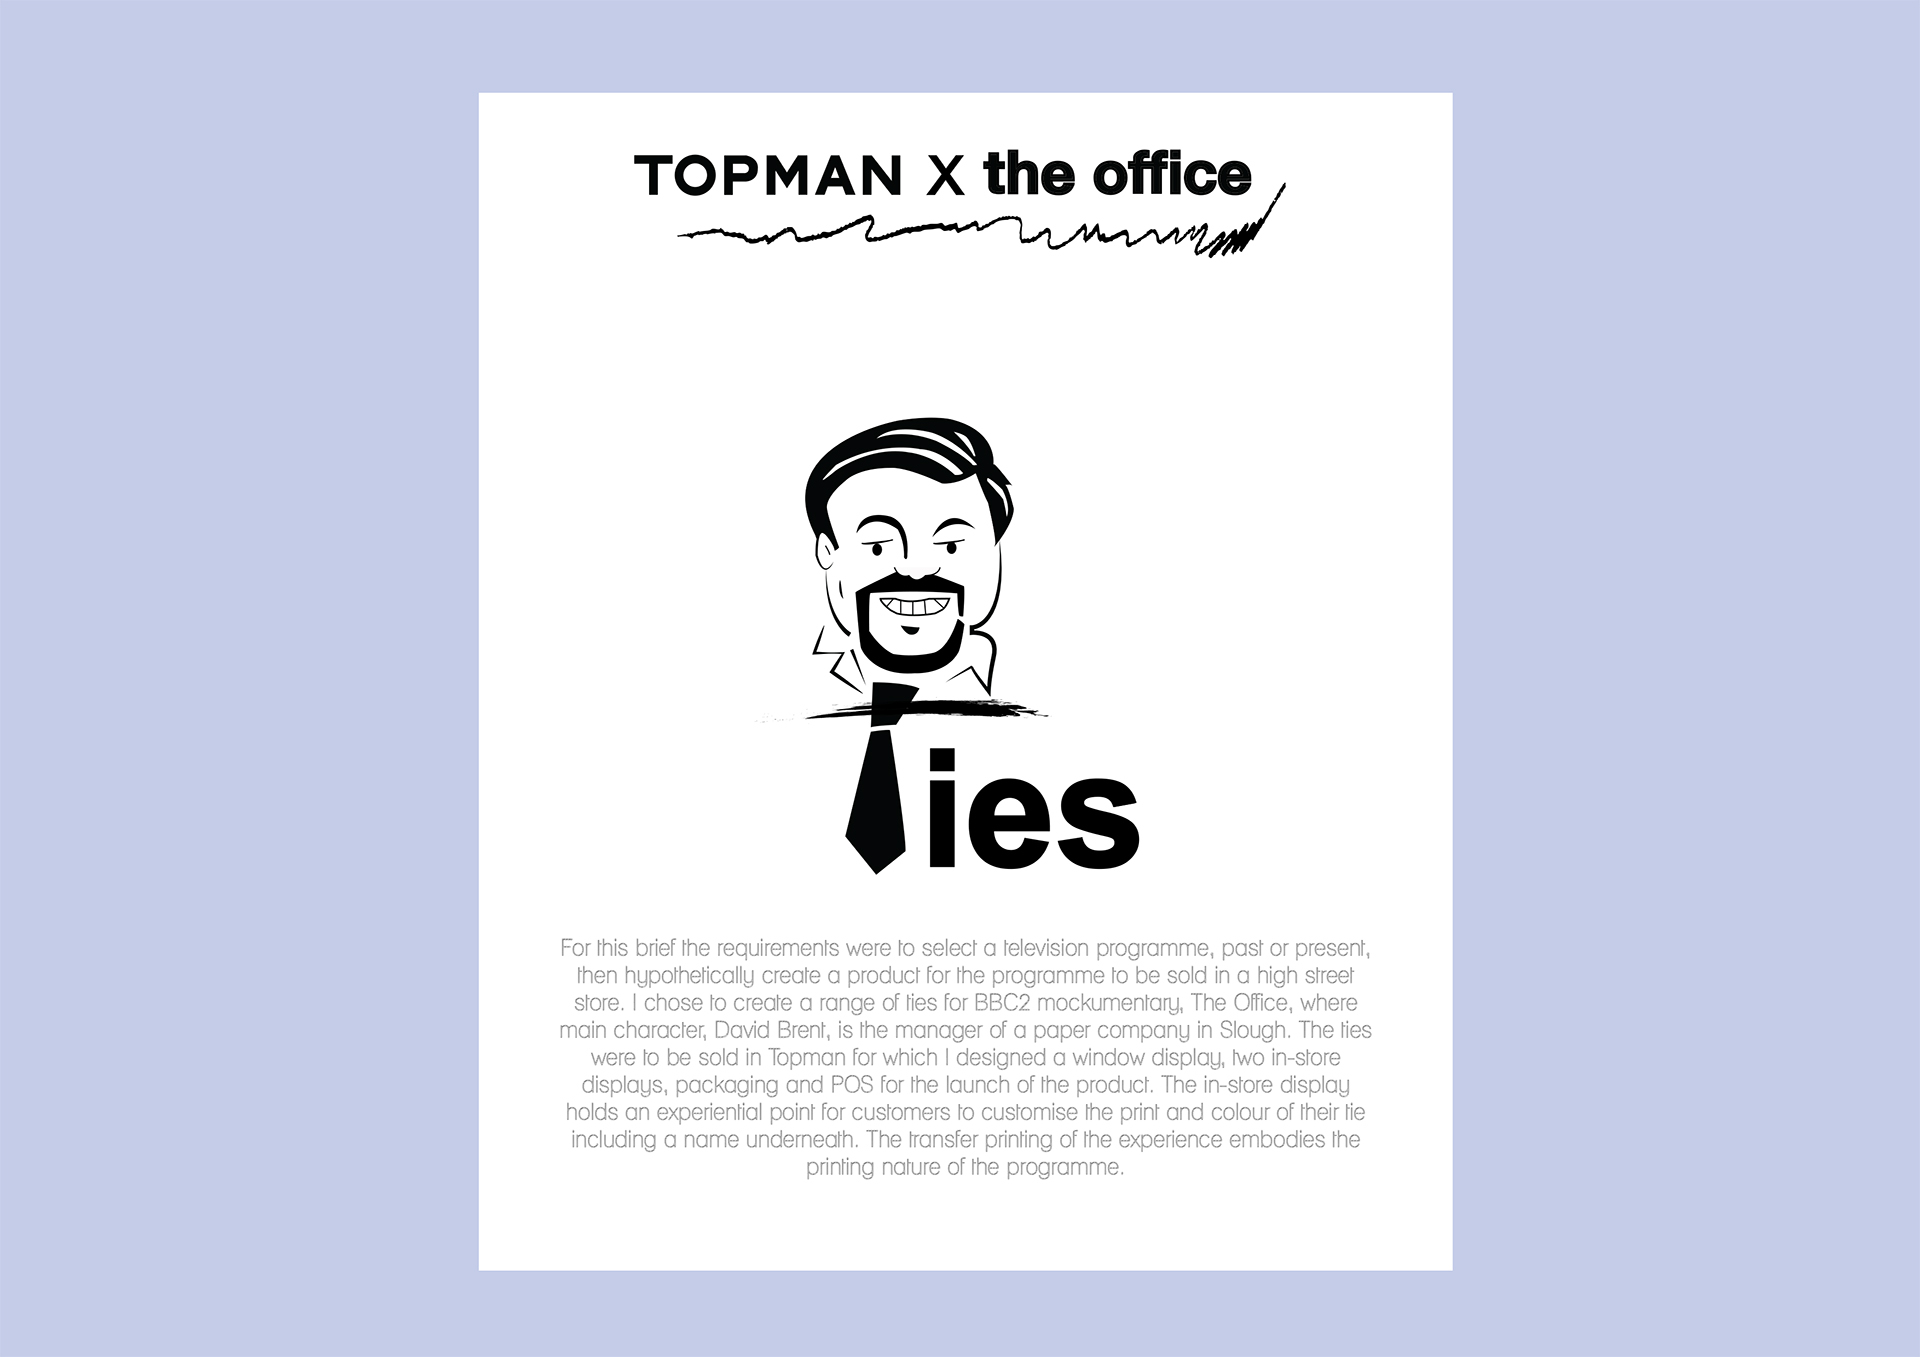 The Office Ties for Topman Image